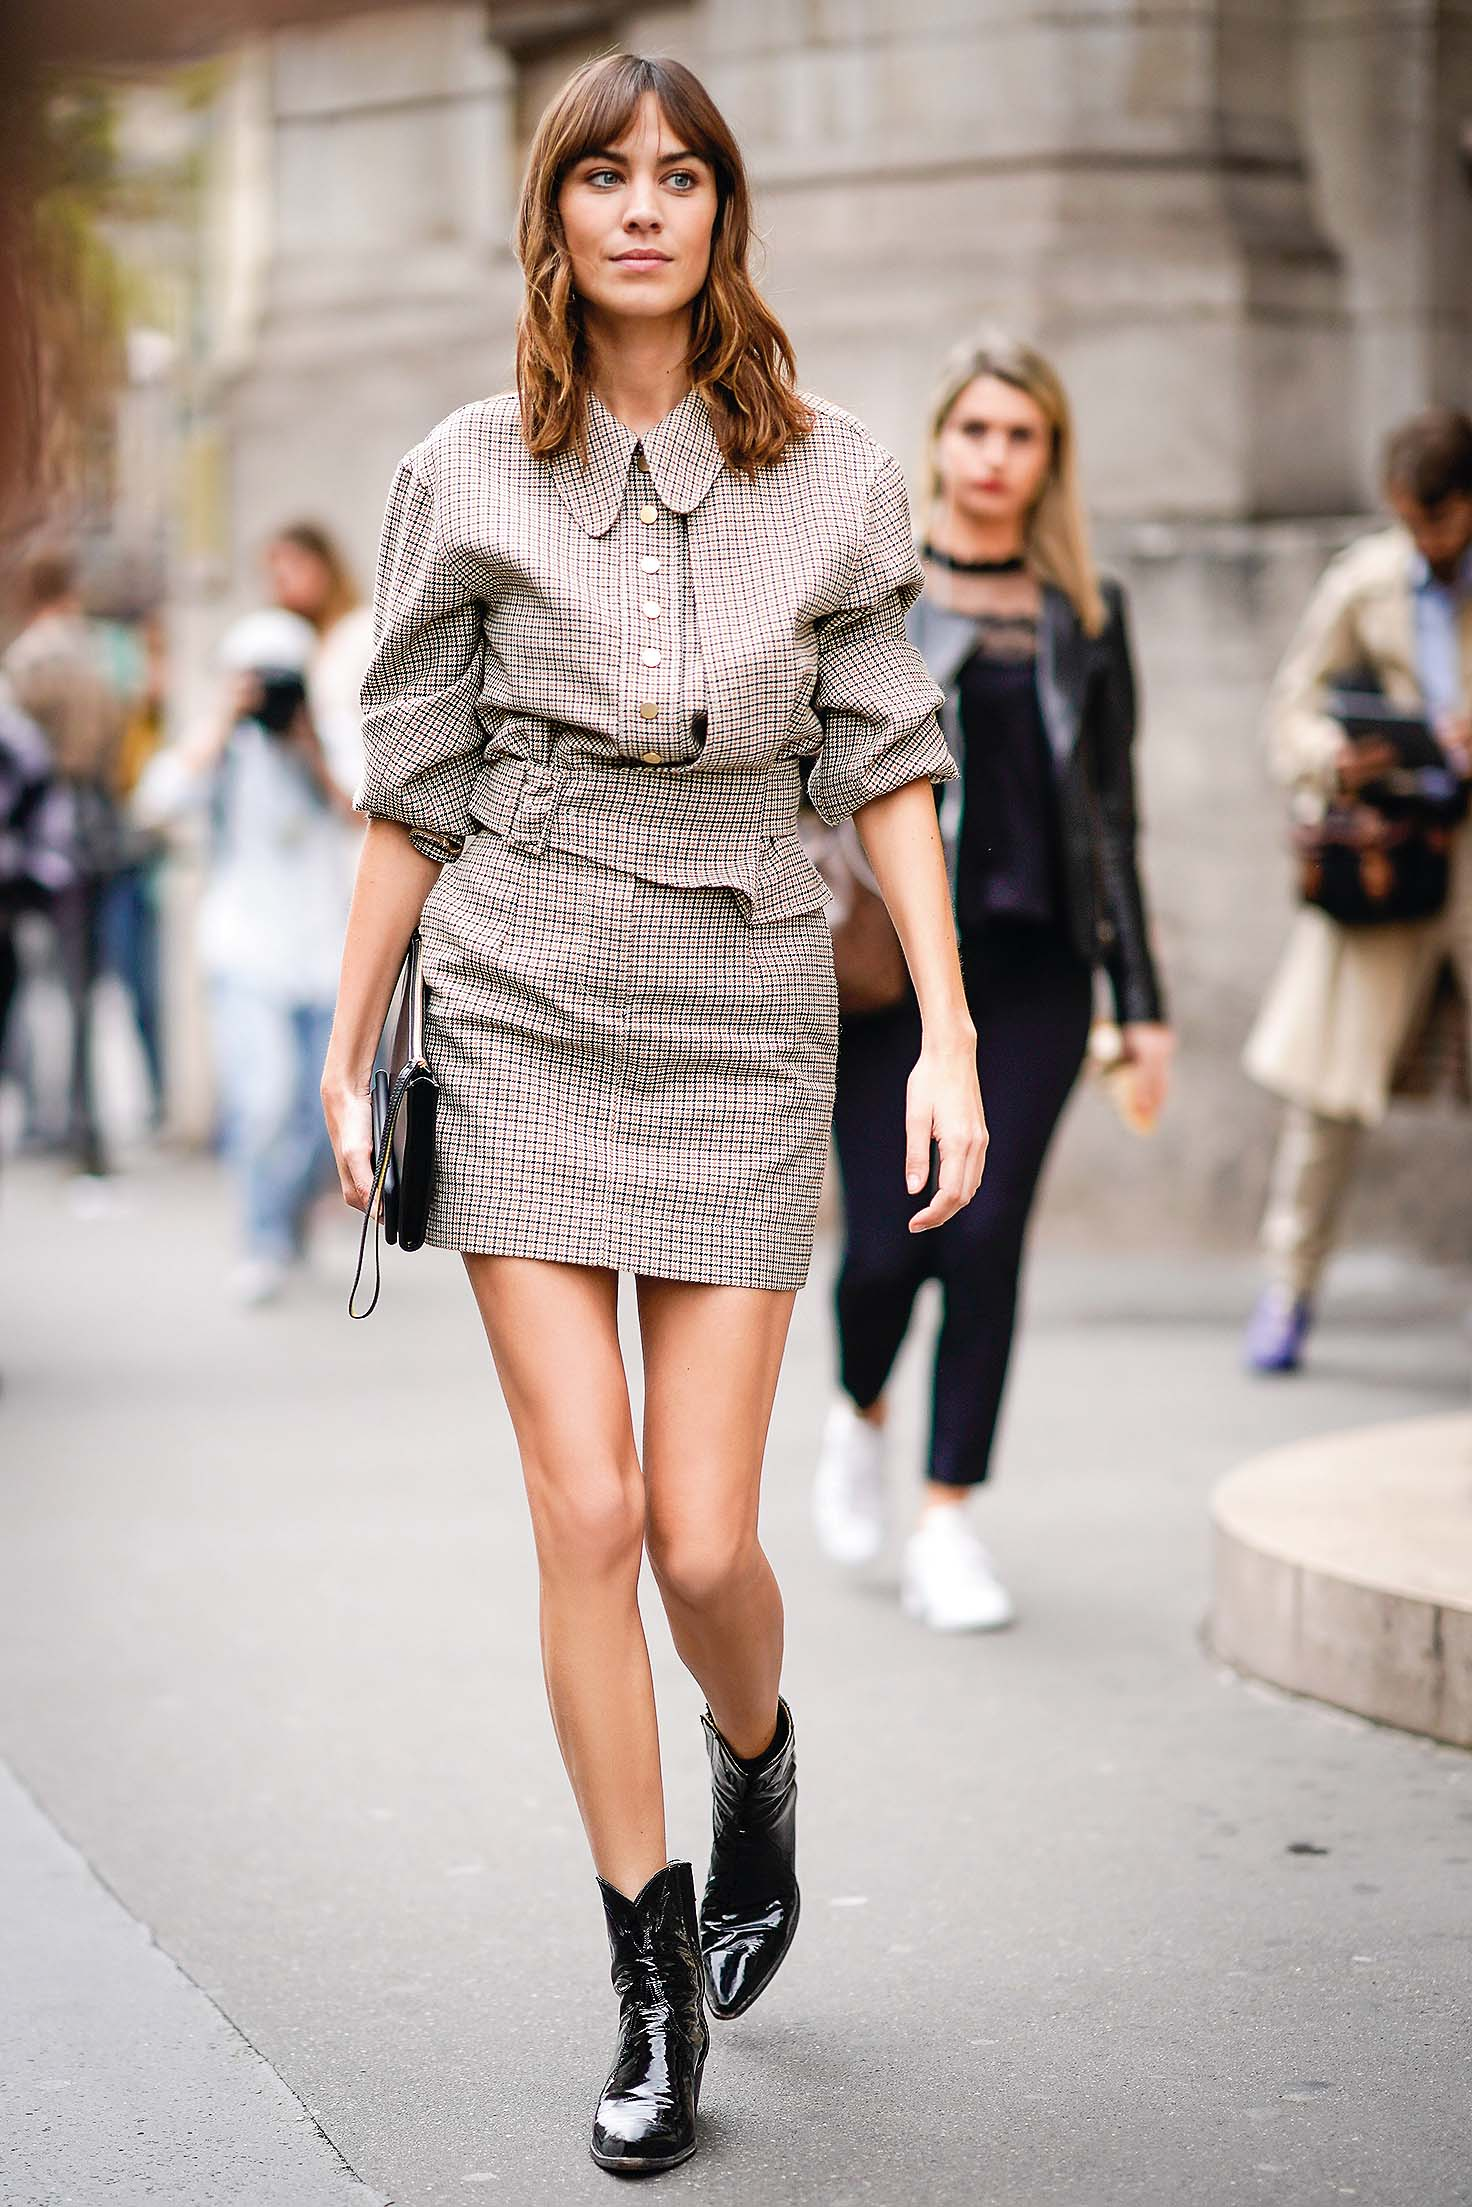 PARIS, FRANCE - OCTOBER 02:  Alexa Chung wears a checkered dress, outside Stella Mccartney, during Paris Fashion Week Womenswear Spring/Summer 2018, on October 2, 2017 in Paris, France.  (Photo by Edward Berthelot/Getty Images)